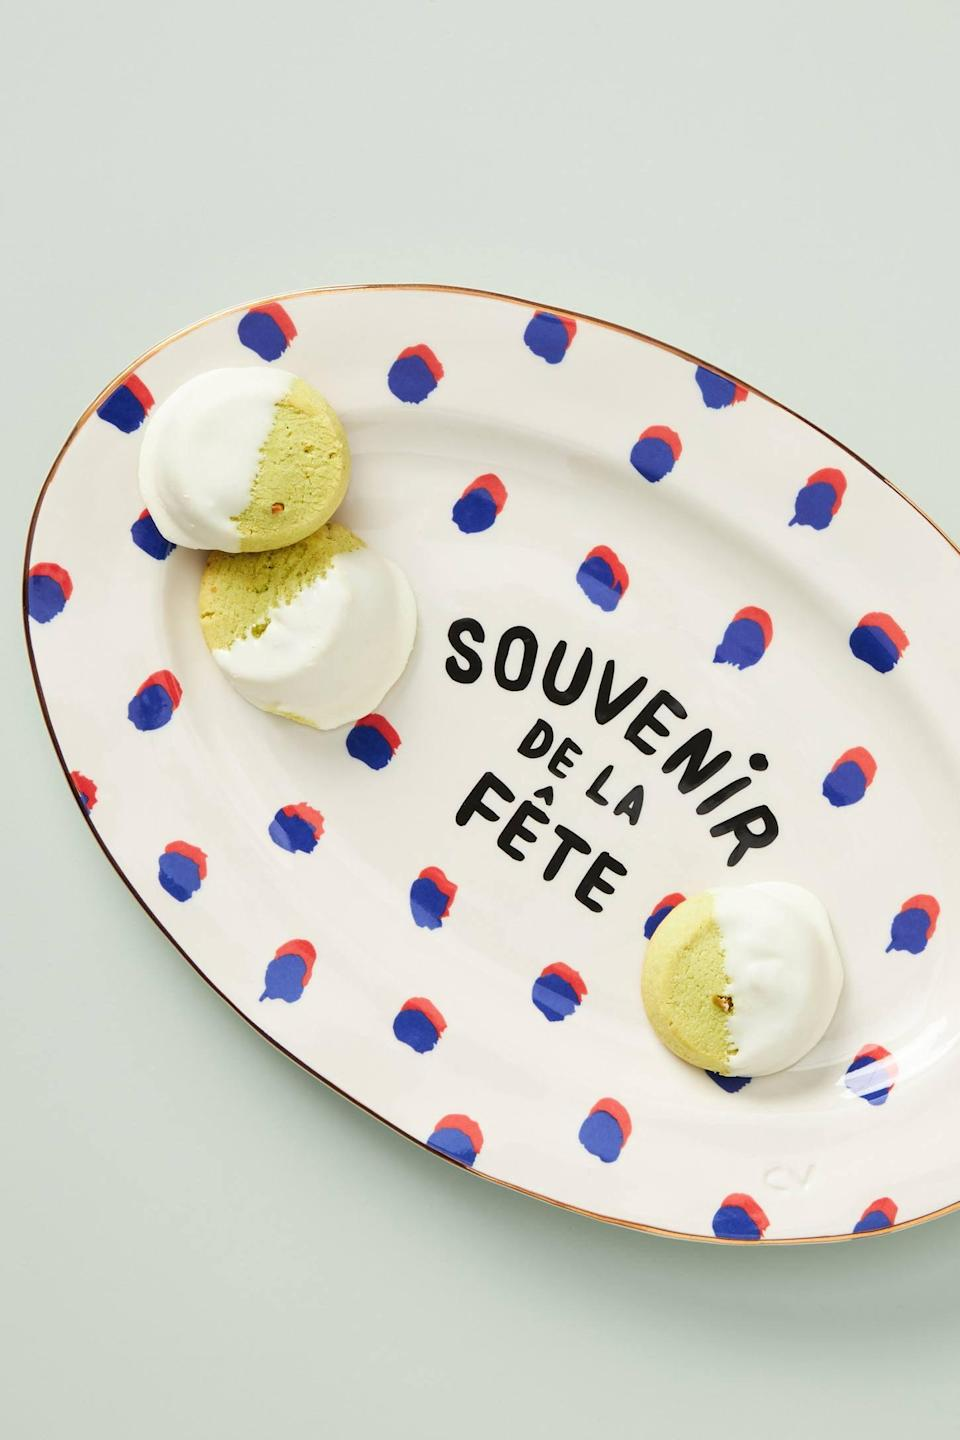 "<p>This <a href=""https://www.popsugar.com/buy/Clare-V-Anthropologie-Souvenir-de-la-Fete-Platter-562169?p_name=Clare%20V.%20for%20Anthropologie%20Souvenir%20de%20la%20Fete%20Platter&retailer=anthropologie.com&pid=562169&price=58&evar1=casa%3Aus&evar9=47360872&evar98=https%3A%2F%2Fwww.popsugar.com%2Fhome%2Fphoto-gallery%2F47360872%2Fimage%2F47361107%2FClare-V-for-Anthropologie-Souvenir-de-la-Fete-Platter&list1=shopping%2Chome%20decor%2Cdecor%20shopping%2Chome%20shopping&prop13=api&pdata=1"" rel=""nofollow noopener"" class=""link rapid-noclick-resp"" target=""_blank"" data-ylk=""slk:Clare V. for Anthropologie Souvenir de la Fete Platter"">Clare V. for Anthropologie Souvenir de la Fete Platter</a> ($58) is a cute addition to your kitchen.</p>"